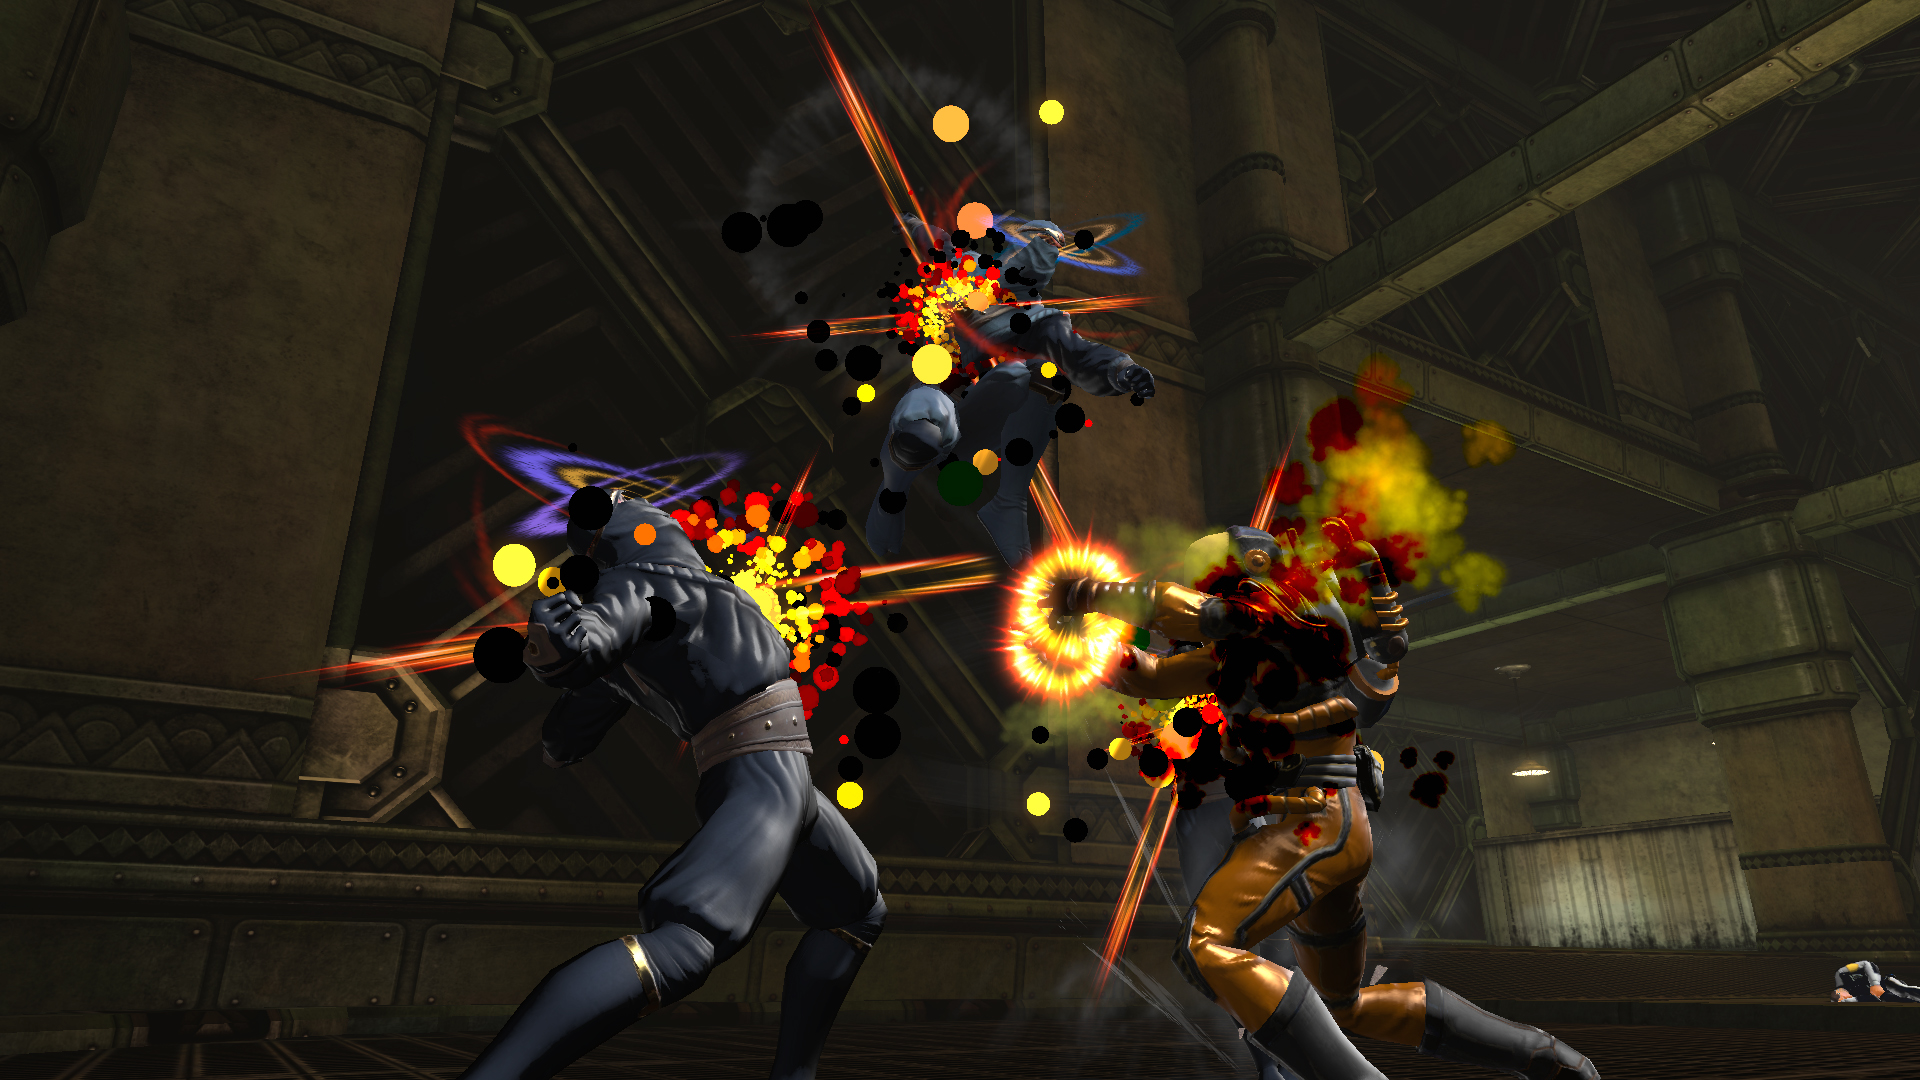 Dc universe online water powers release date 2017